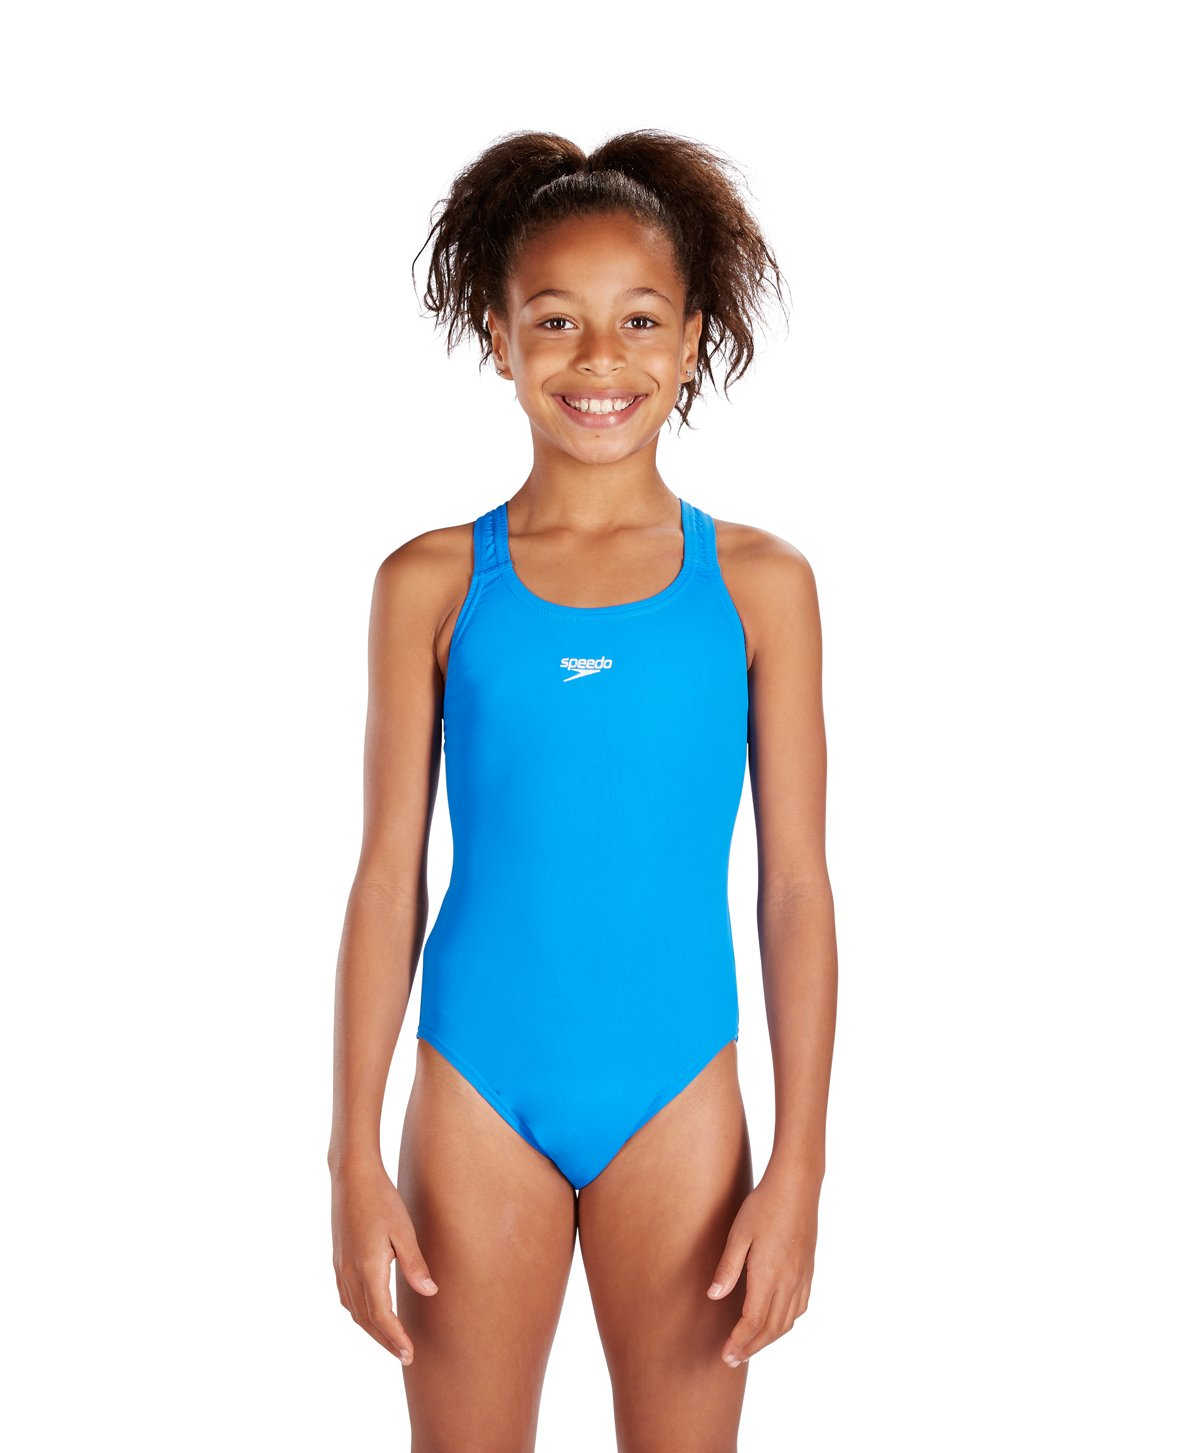 Speedo Girls' Essential Endurance+ Medalist Swimsuit: Amazon.co.uk ...